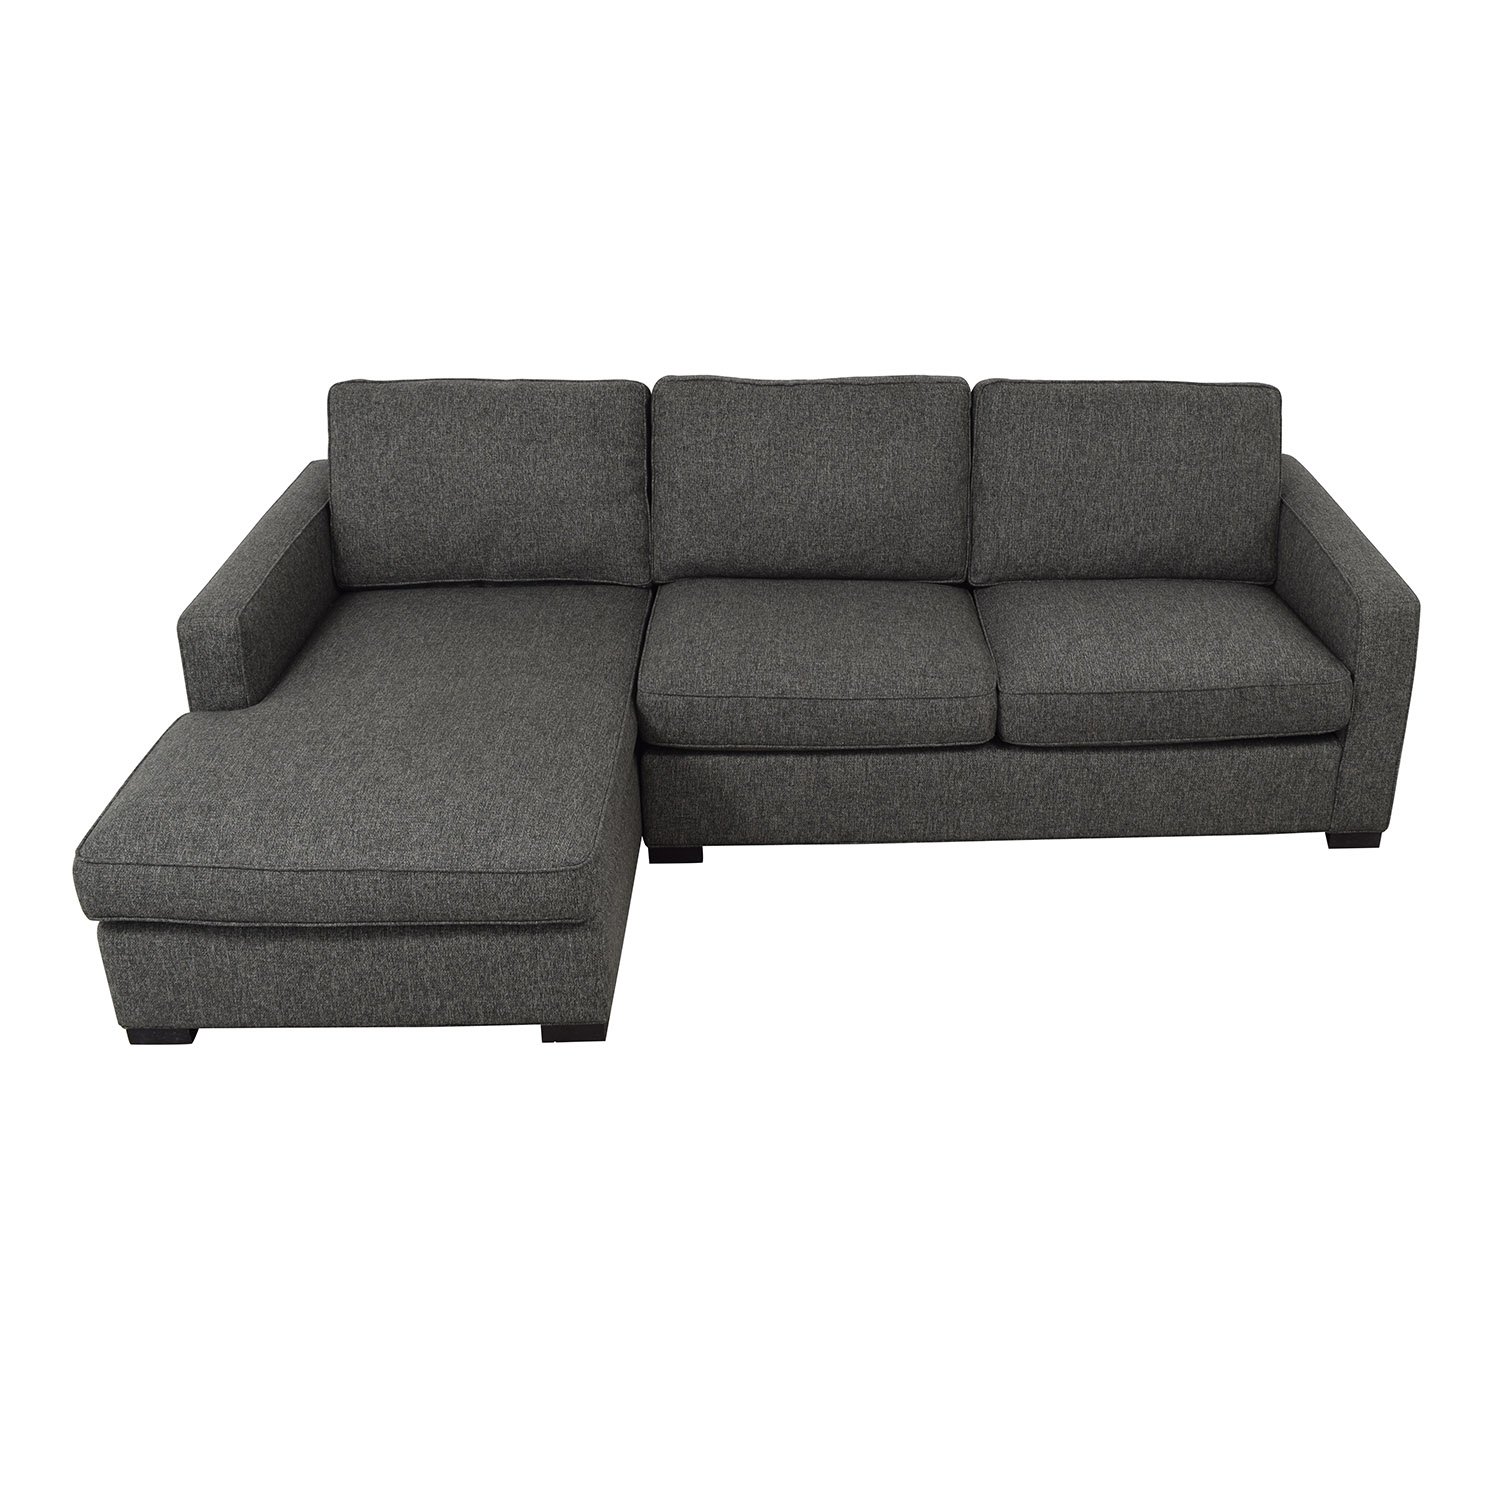 Room & Board Room & Board Morrison Sofa with Left-Arm Chaise nj